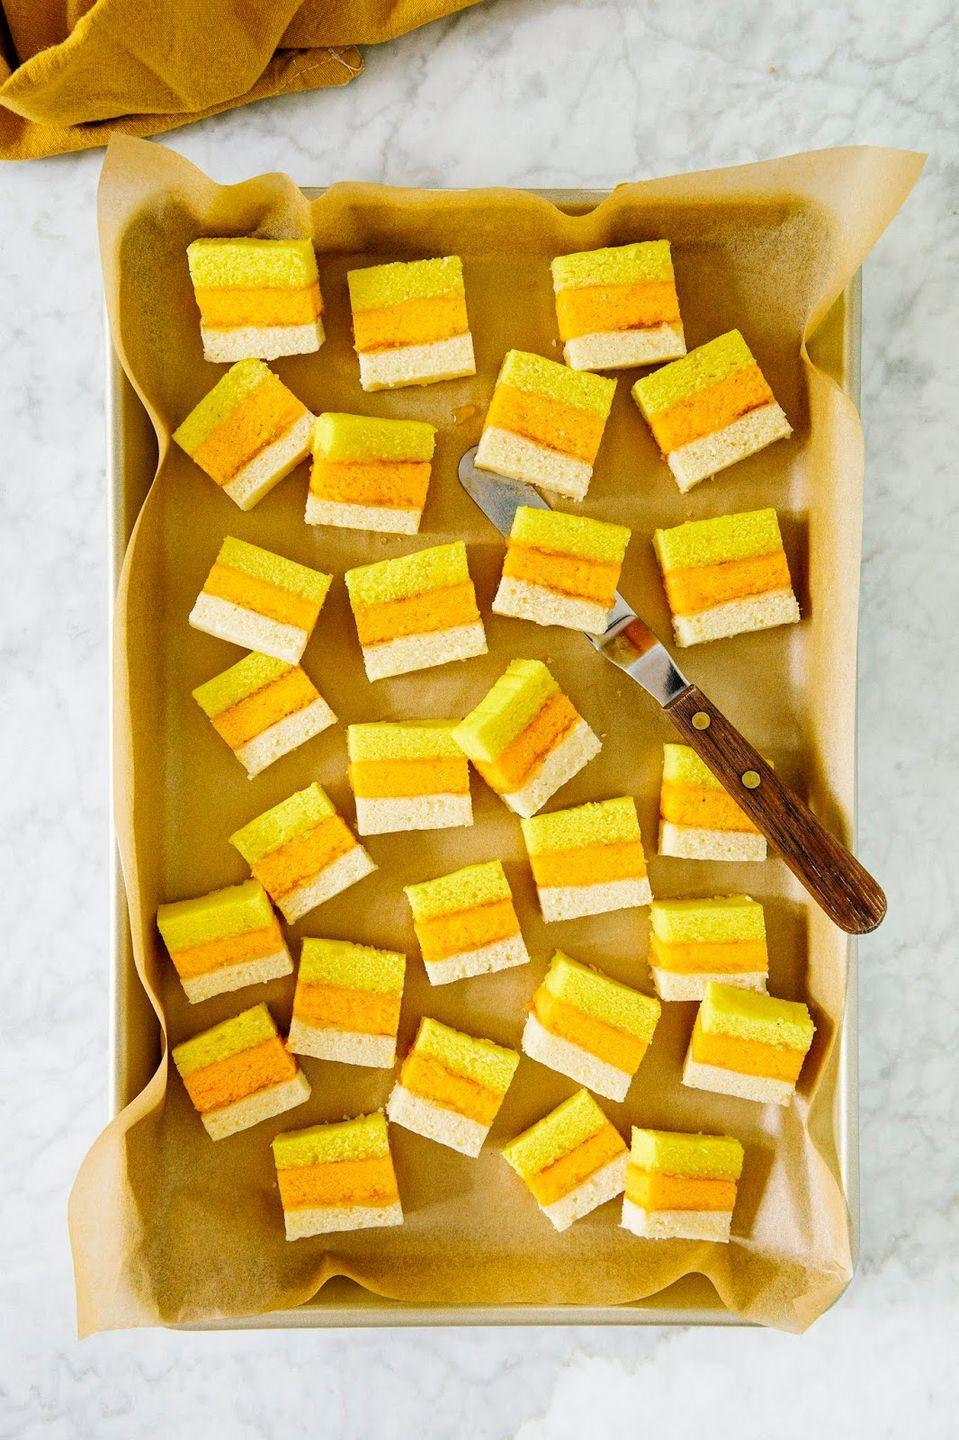 """<p>Here, the classic Italian rainbow cookie gets a Halloween-ified update with layers of orange, yellow, and white almond cake. Jam and chocolate keep things moist and flavorful.</p><p><strong>Get the recipe at <a href=""""https://www.hummingbirdhigh.com/2019/10/candy-corn-cookies.html"""" rel=""""nofollow noopener"""" target=""""_blank"""" data-ylk=""""slk:Hummingbird High"""" class=""""link rapid-noclick-resp"""">Hummingbird High</a>.</strong></p><p><a class=""""link rapid-noclick-resp"""" href=""""https://go.redirectingat.com?id=74968X1596630&url=https%3A%2F%2Fwww.walmart.com%2Fip%2FThe-Pioneer-Woman-Adeline-Cookie-Jar-Turquoise%2F54267223&sref=https%3A%2F%2Fwww.thepioneerwoman.com%2Ffood-cooking%2Fmeals-menus%2Fg32110899%2Fbest-halloween-desserts%2F"""" rel=""""nofollow noopener"""" target=""""_blank"""" data-ylk=""""slk:SHOP COOKIE JARS"""">SHOP COOKIE JARS</a></p>"""